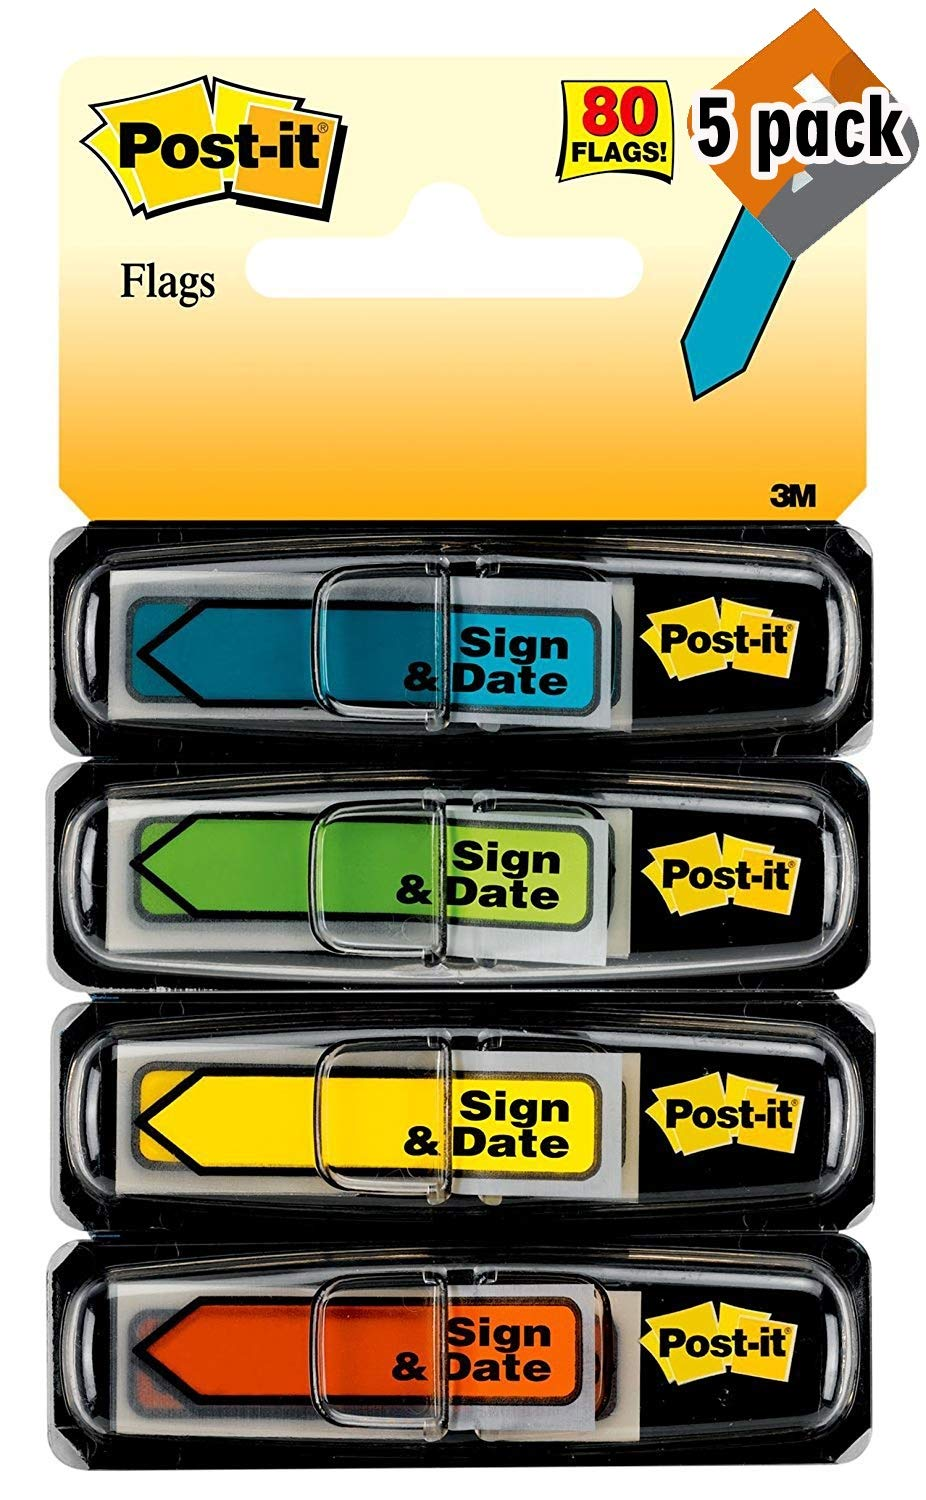 Post-it Message Flags,''Sign and Date'', Assorted Colors.47 in. Wide, 30/Dispenser, 4 Dispensers/Pack by Post-it